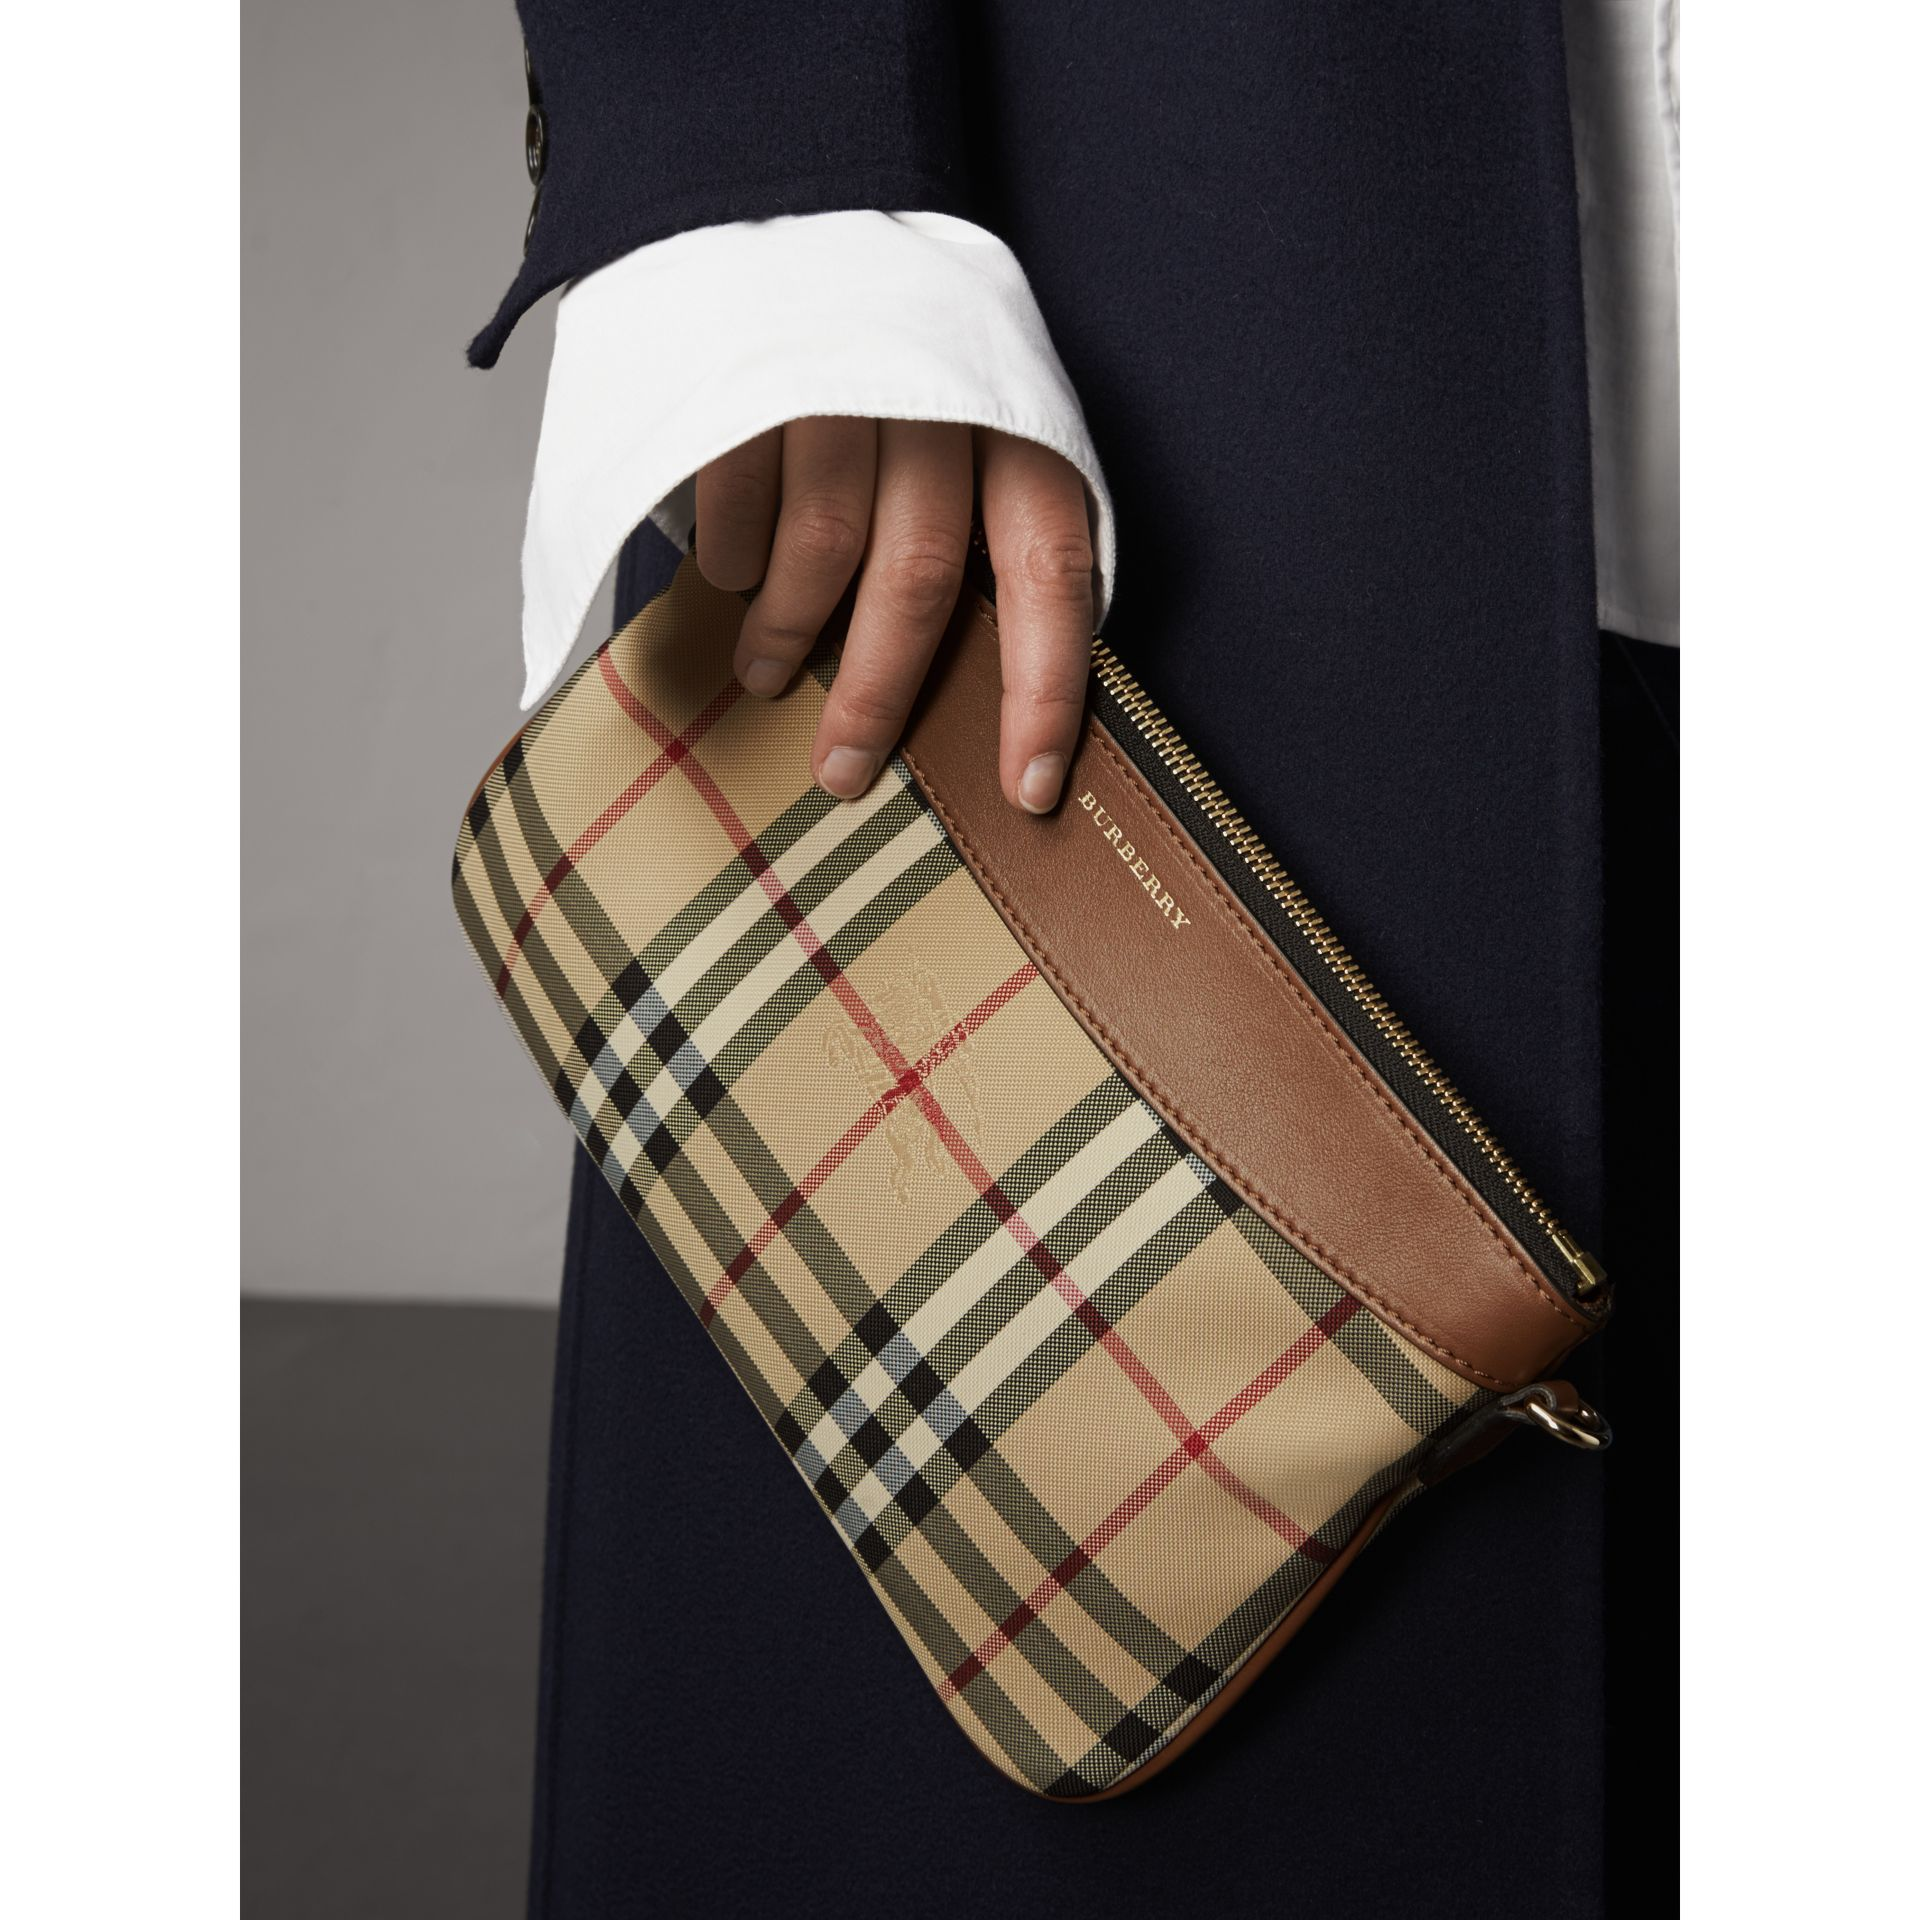 Horseferry Check and Leather Clutch Bag in Tan - Women | Burberry - gallery image 4